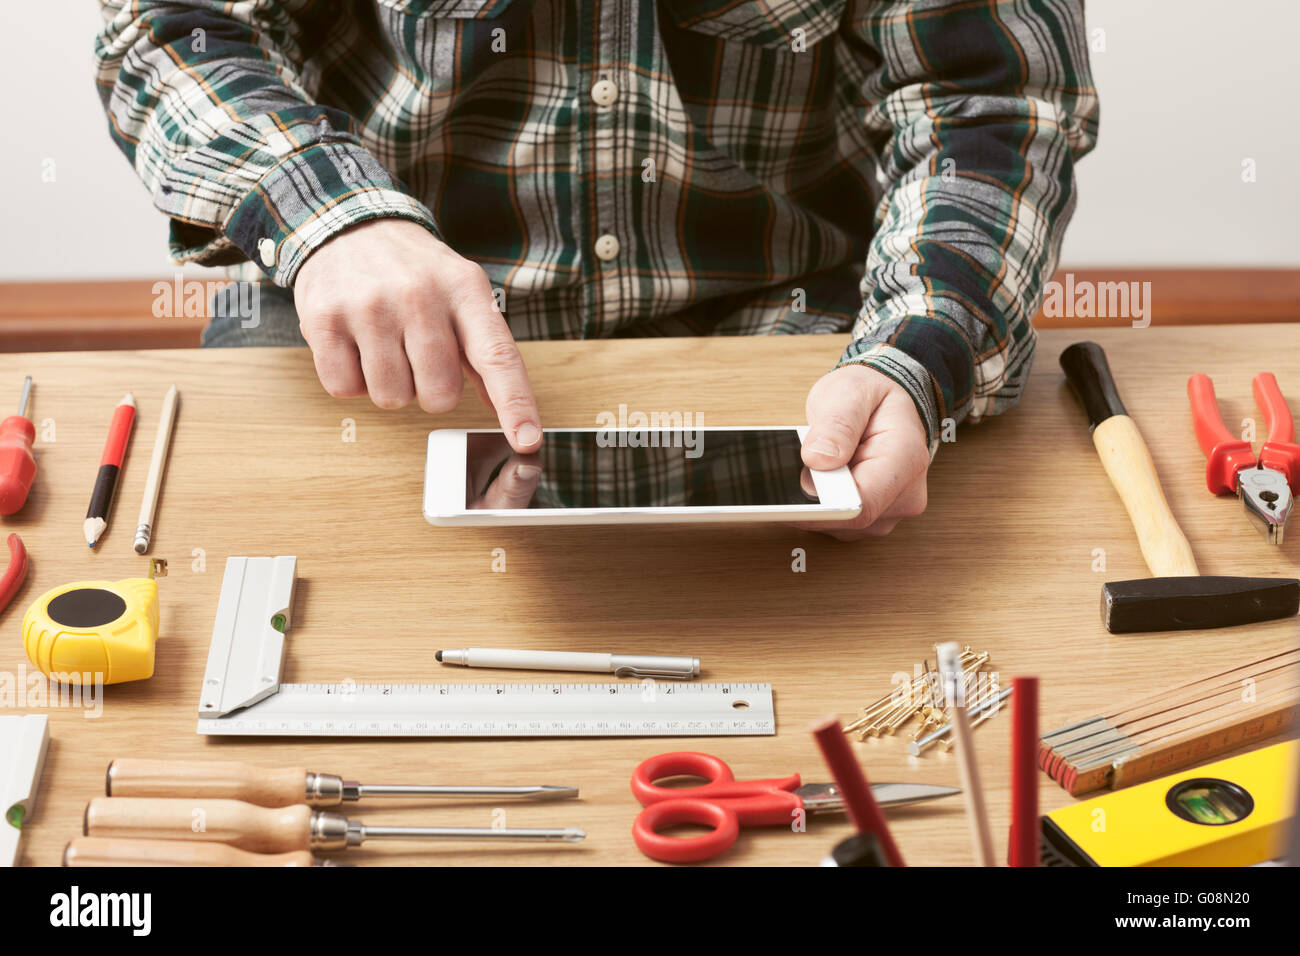 Man working on a DIY project at home with a digital tablet, carpentry and construction tools on a work table, hands - Stock Image